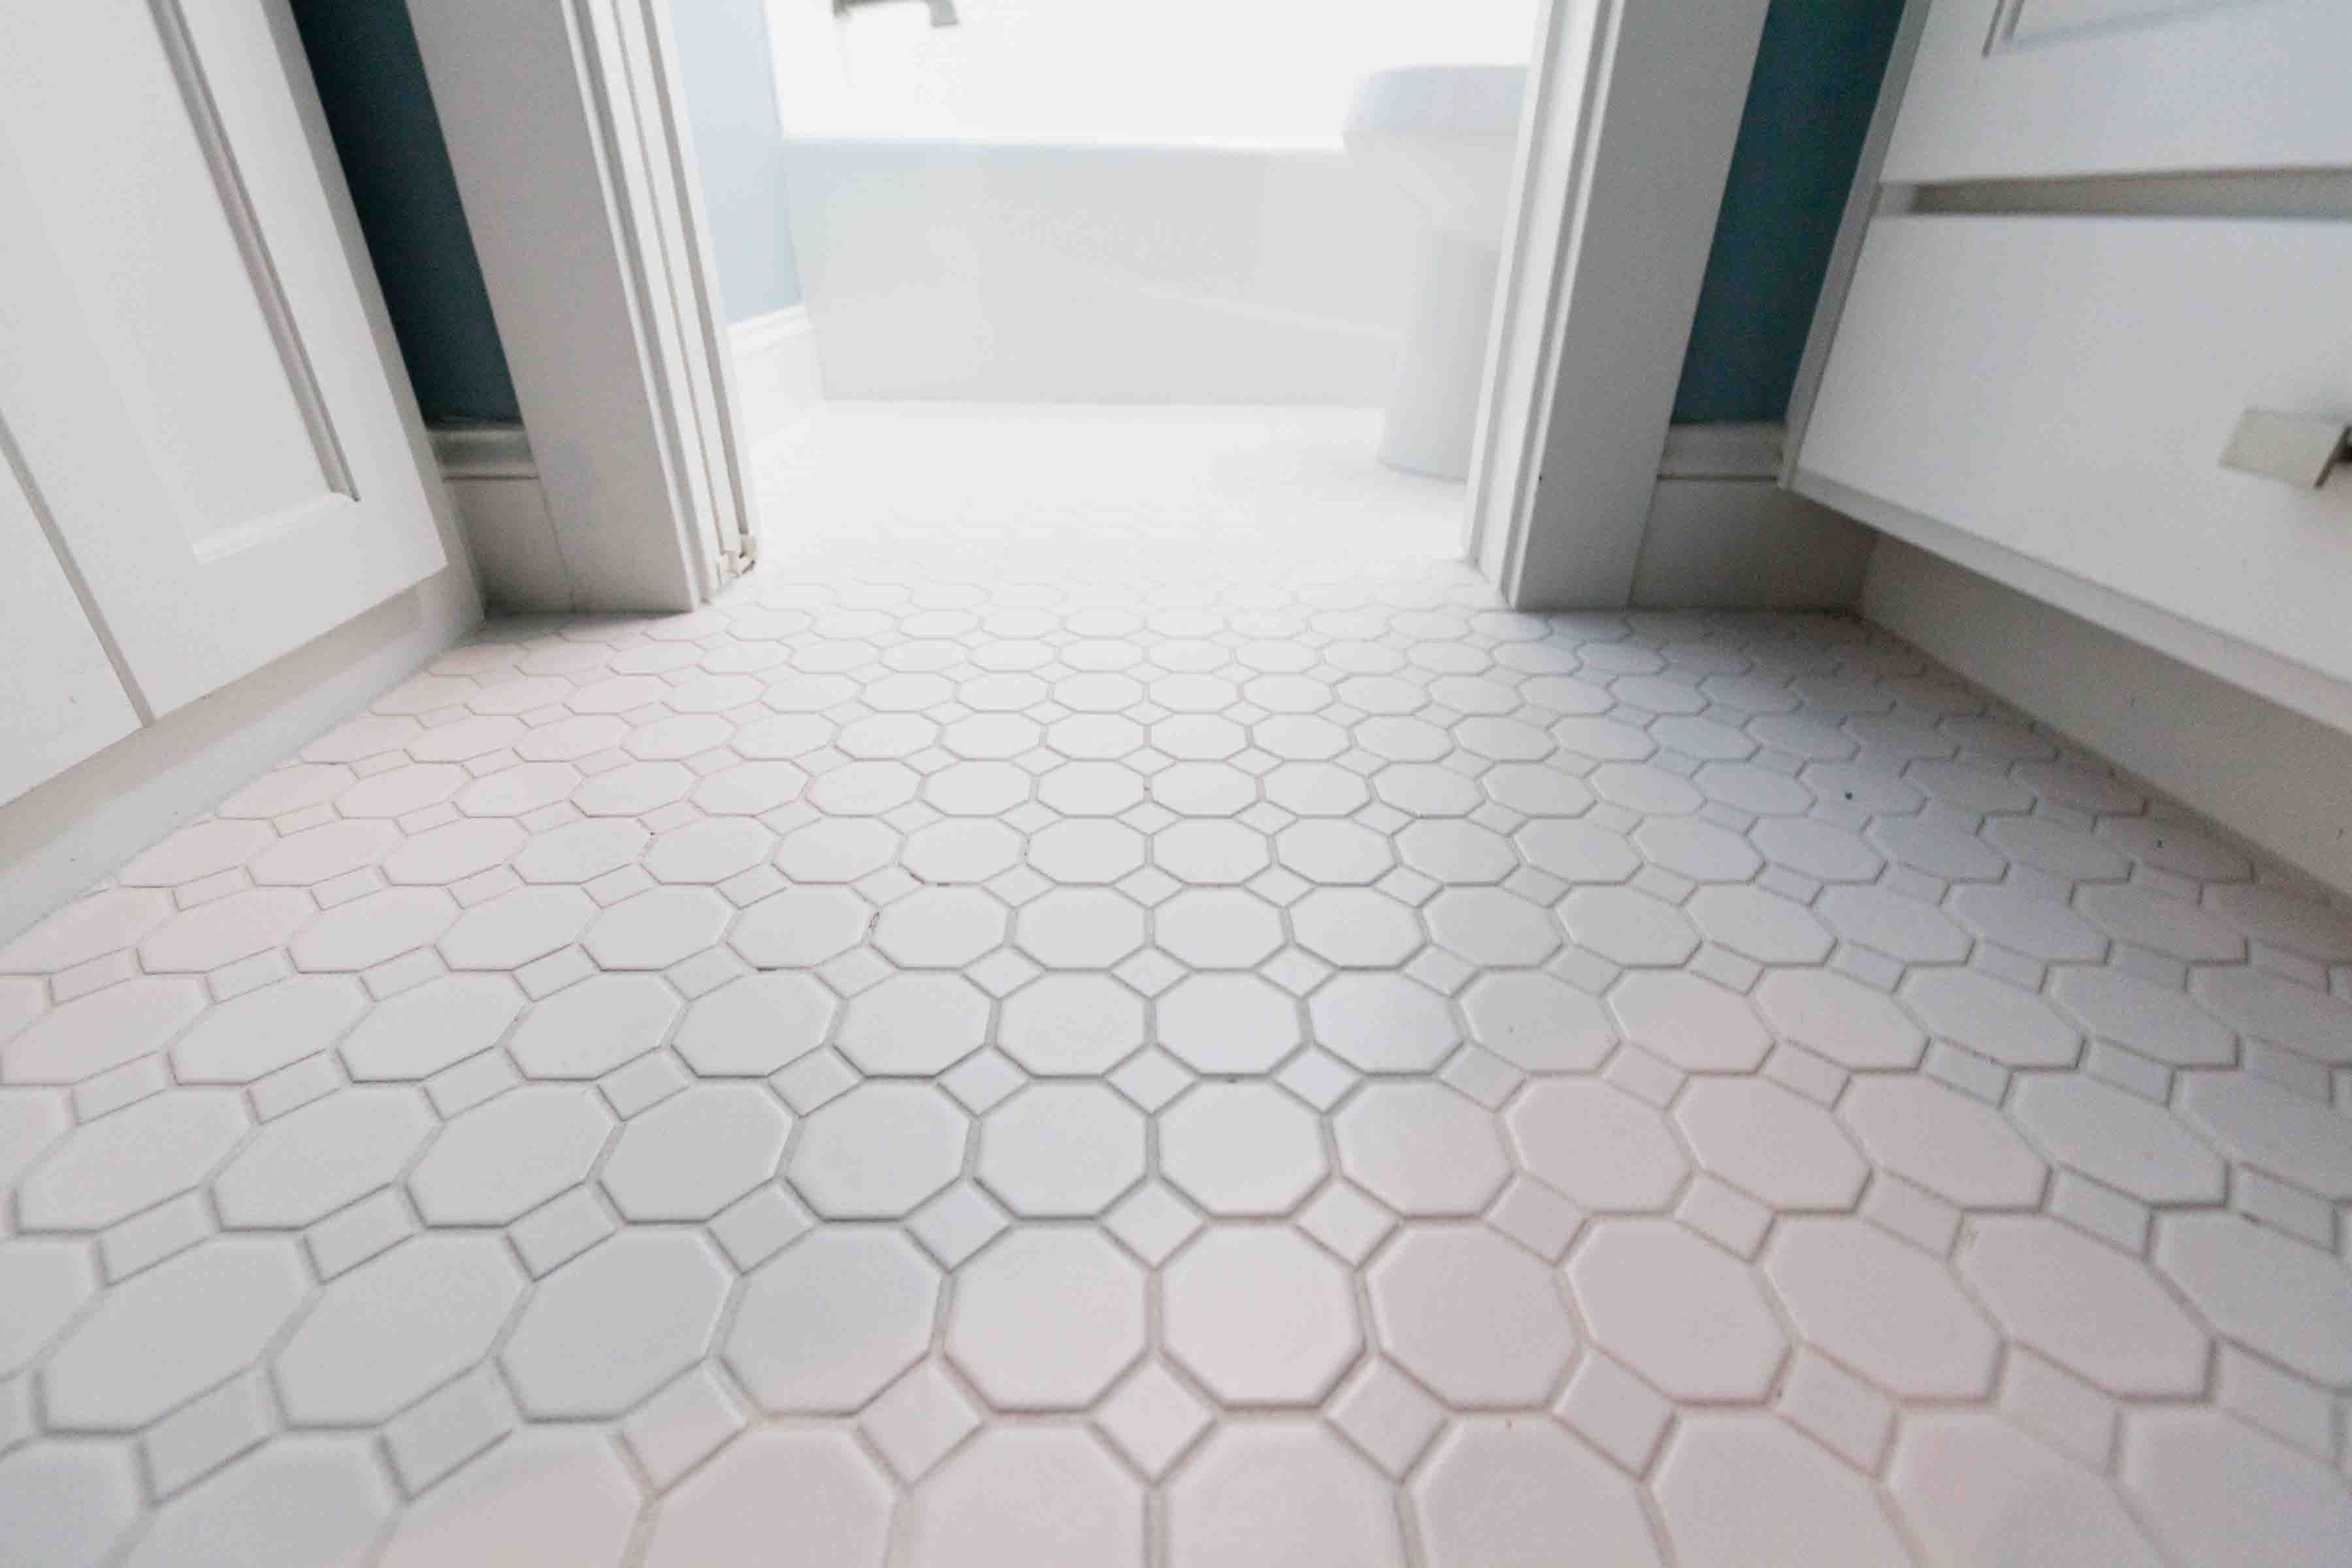 White Bathroom Tile Fullcustom White Floor Tile Bzbzjwi « Carpet ...